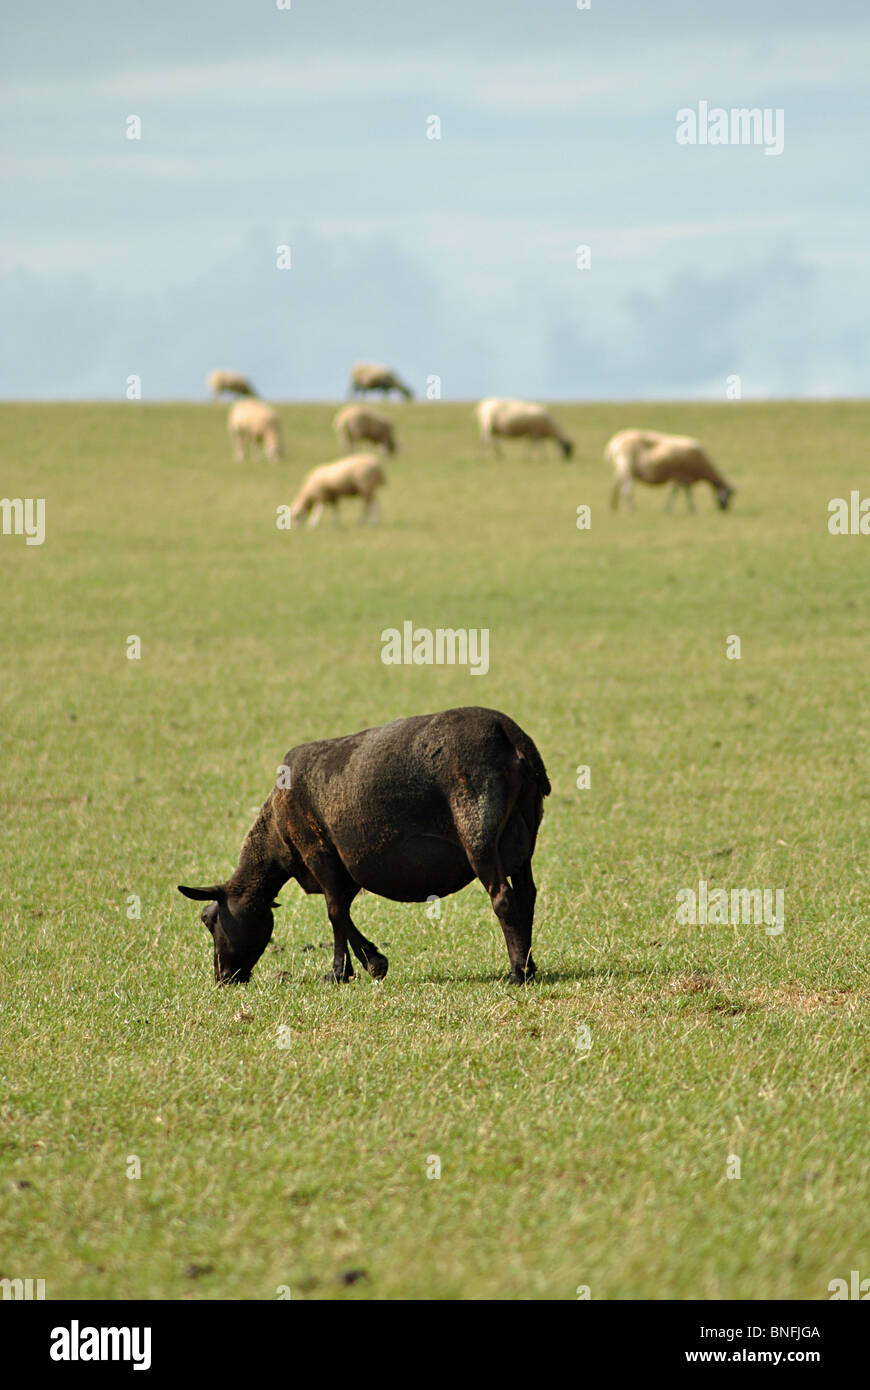 Single black sheep grazing in a field of white ones - Stock Image